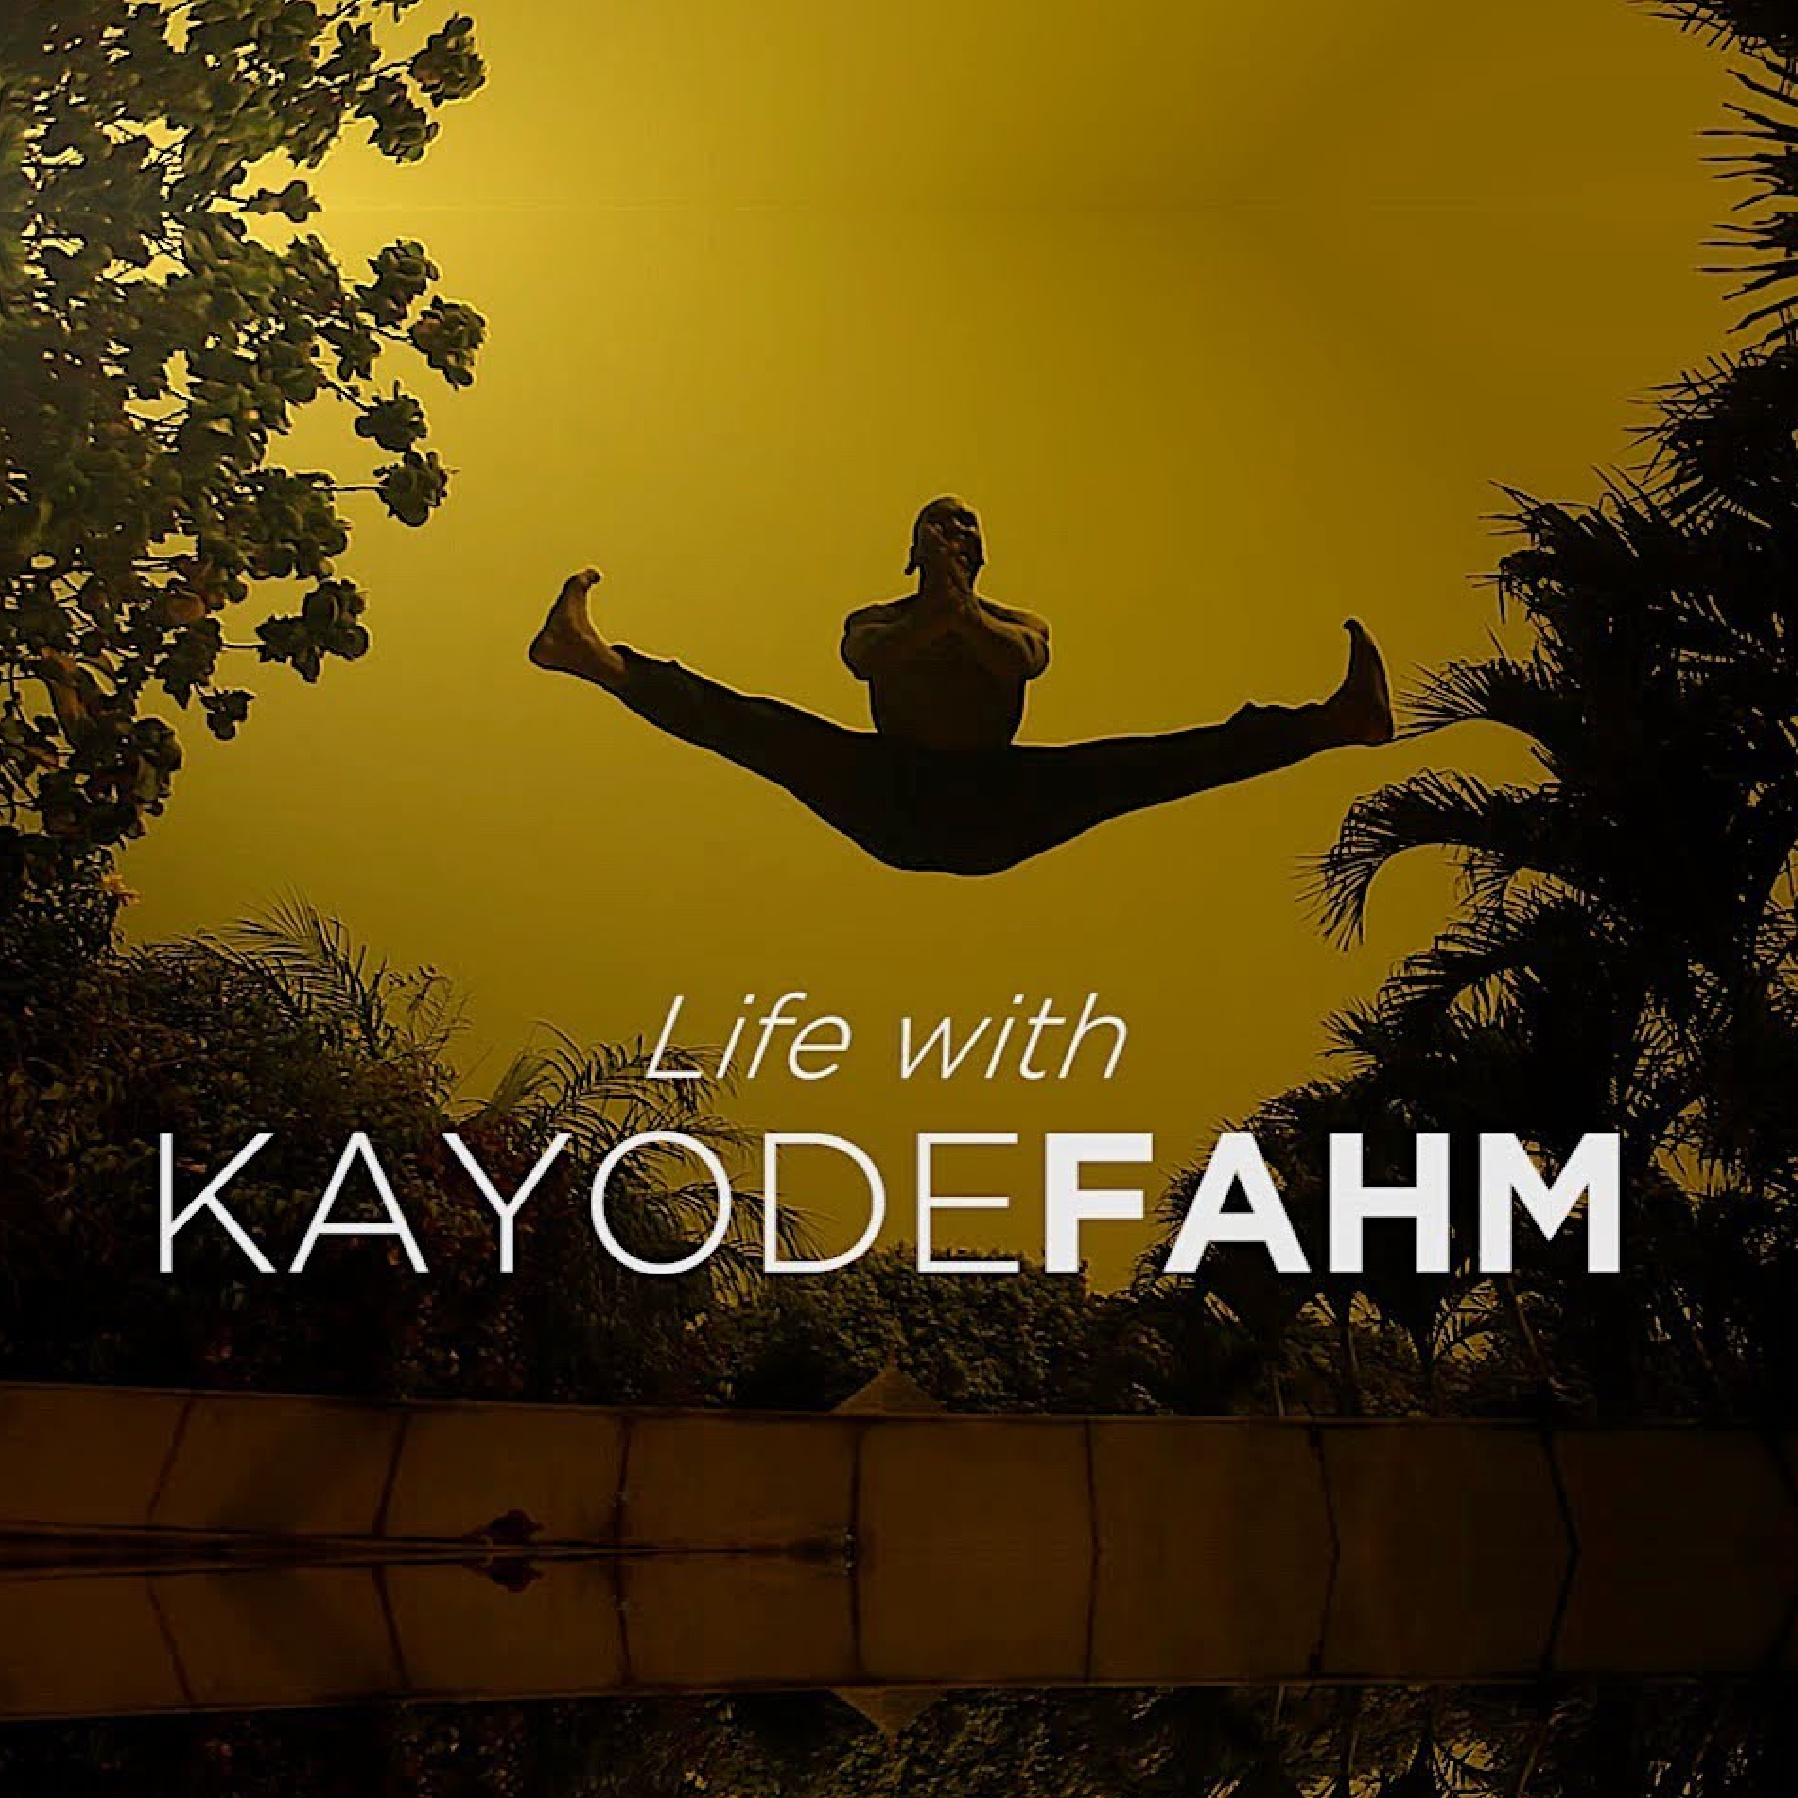 Life with Kayode Fahm